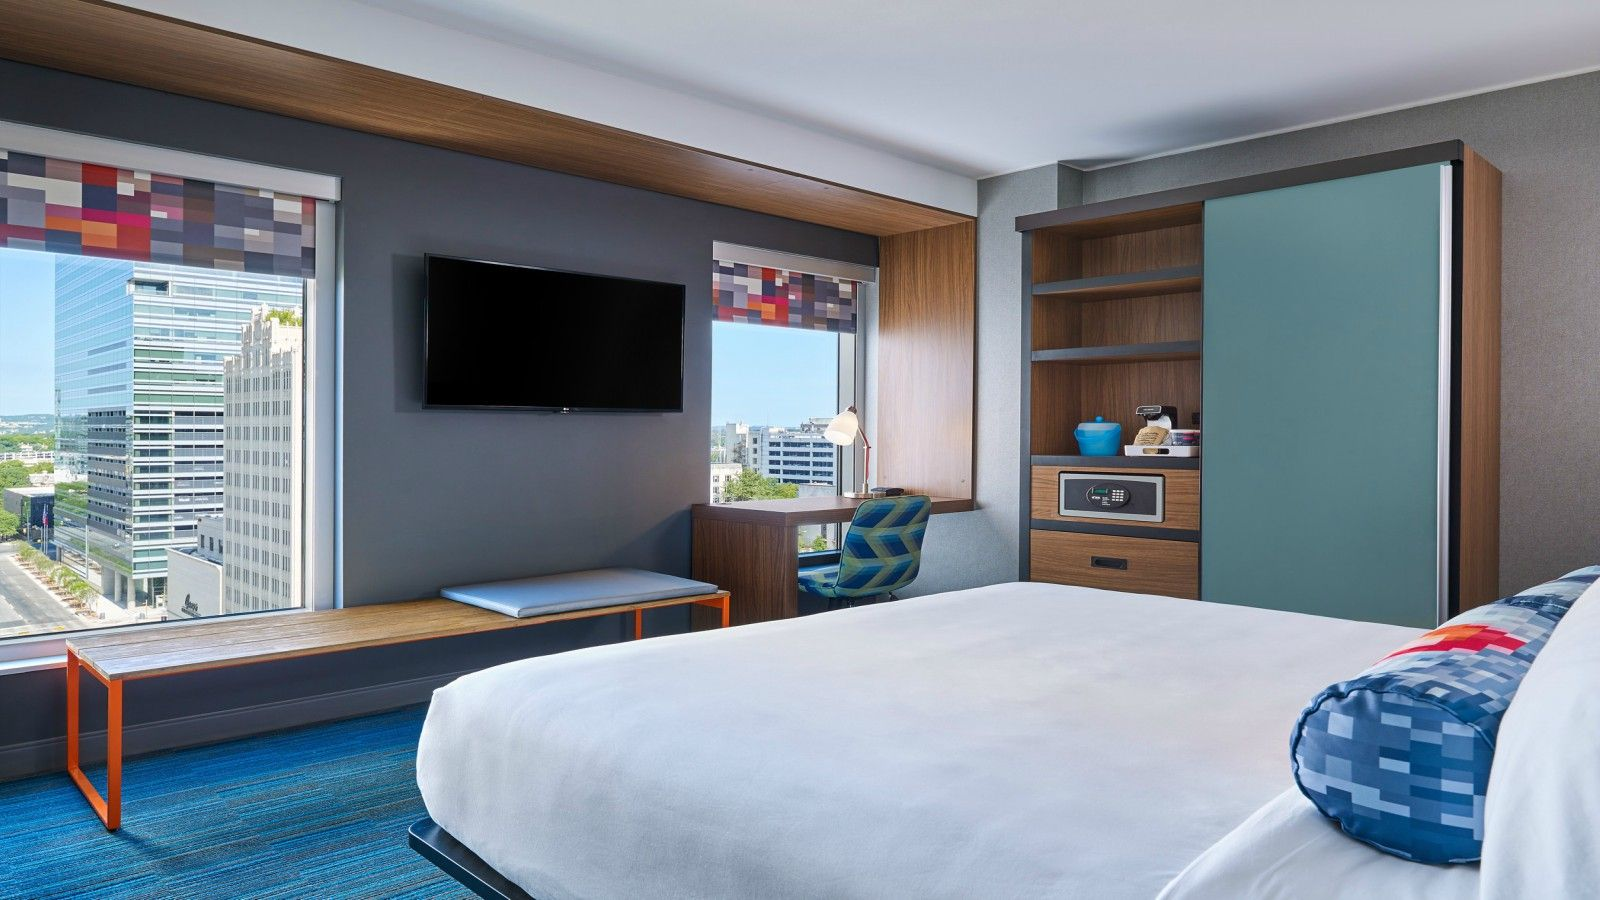 Downtown Austin Accommodations - Aloft King Room